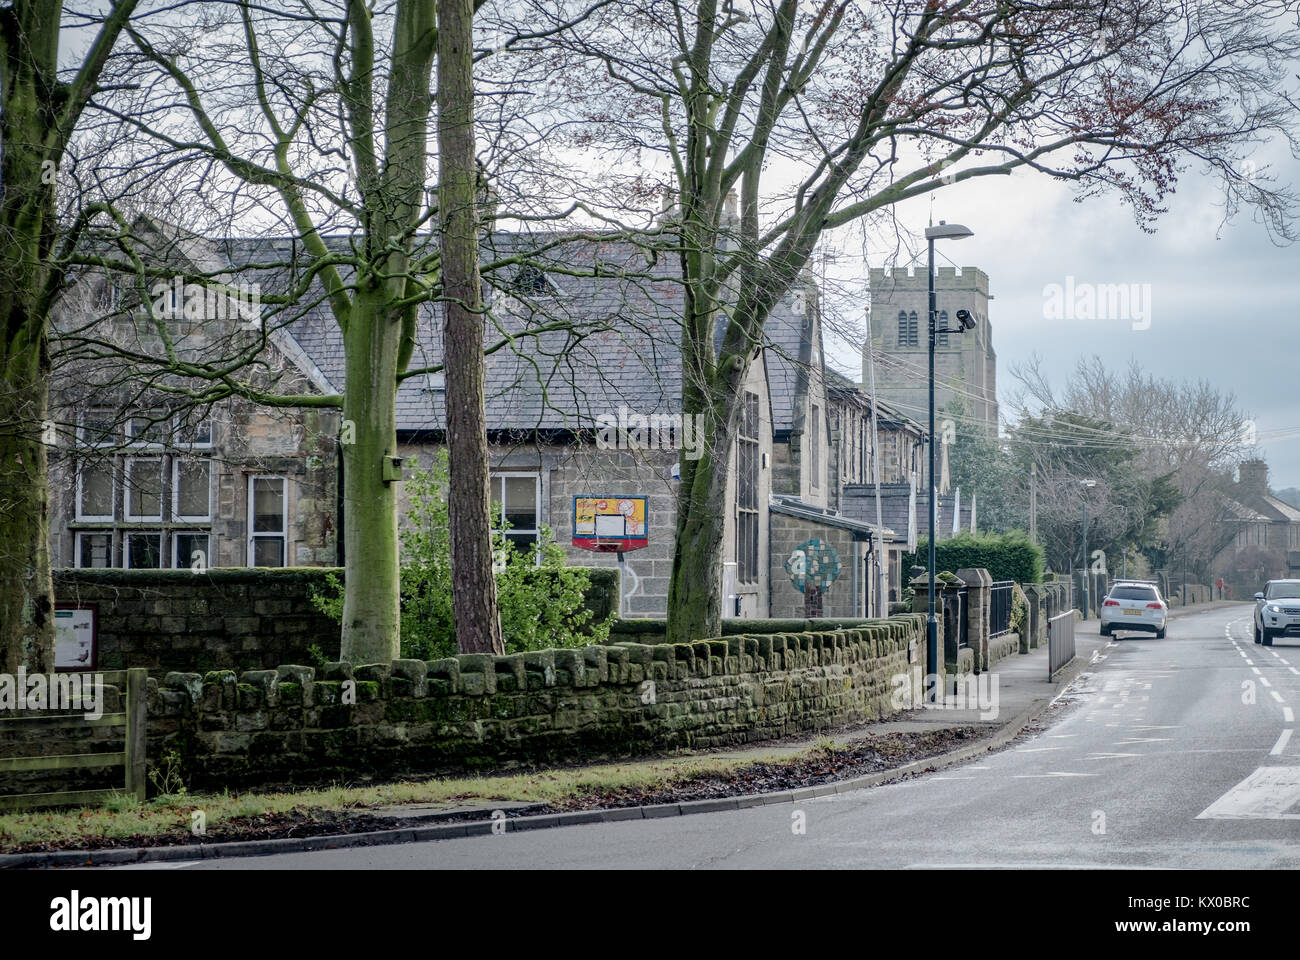 View of Beckwithshaw down the main road. Beckwithshaw village, North Yorkshire, United Kingdom. The village has not changed significantly in 100 years Stock Photo